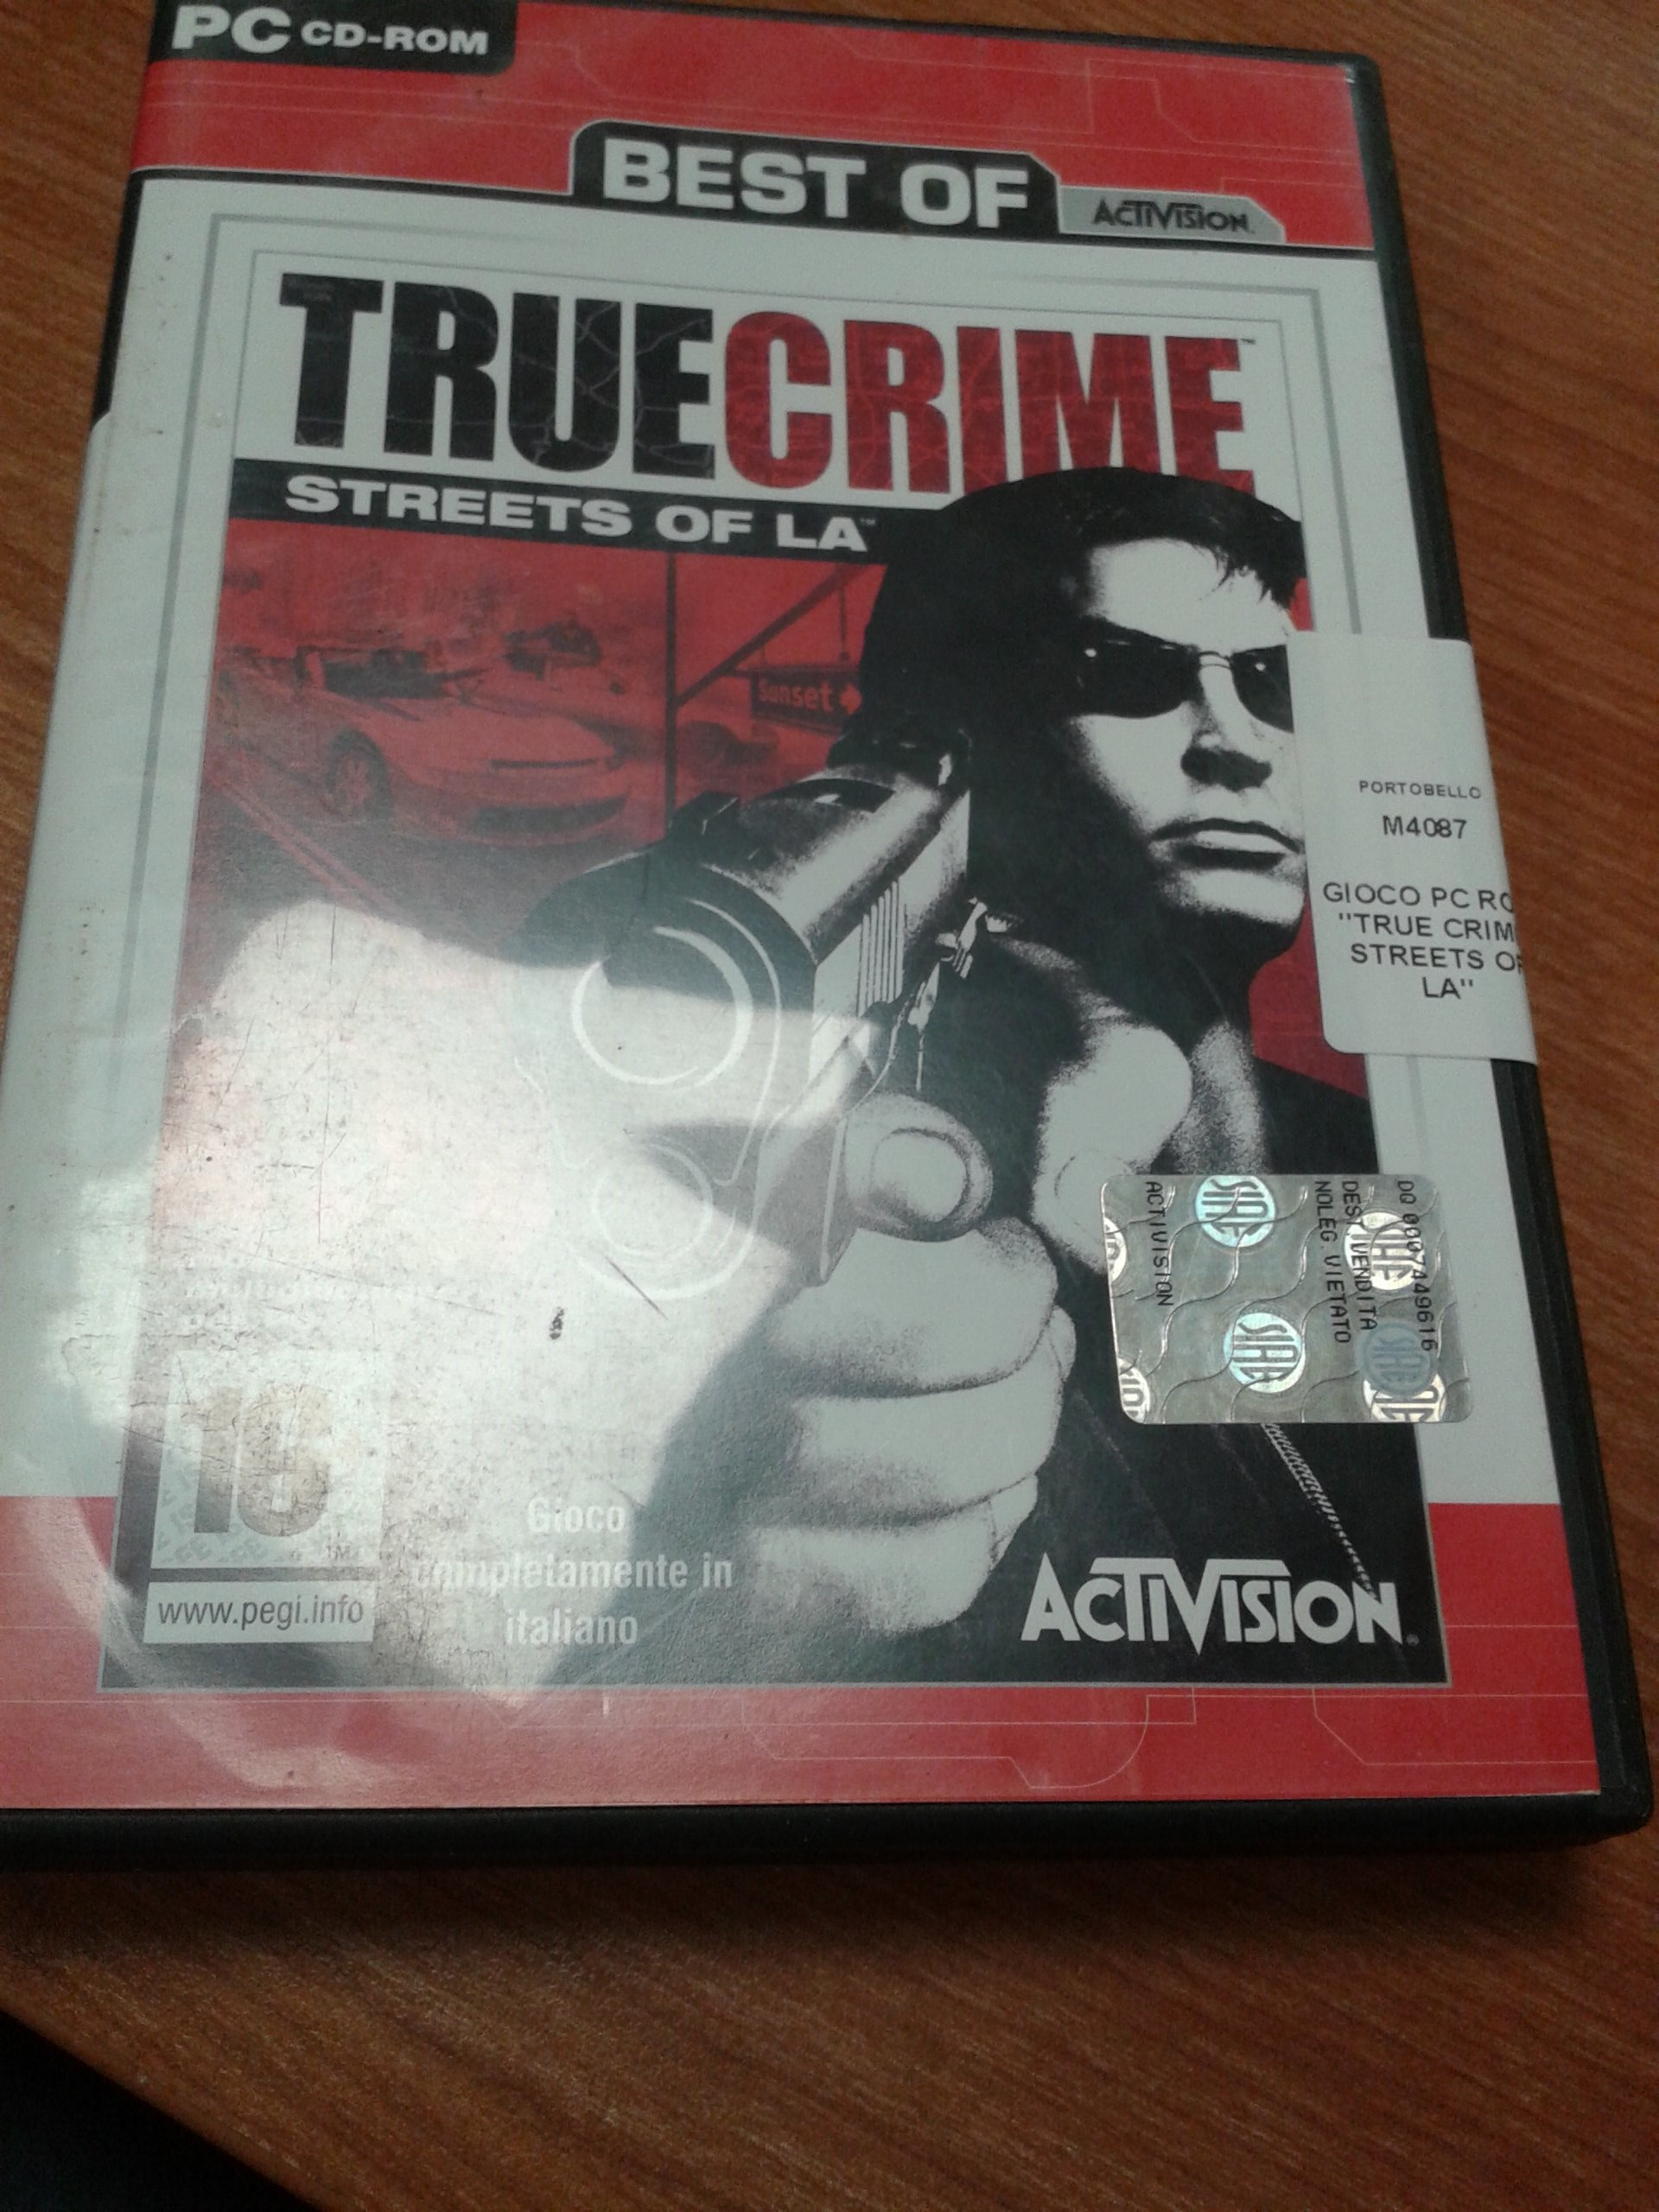 GIOCO PC ROM  TRUE CRIME STREETS OF LA